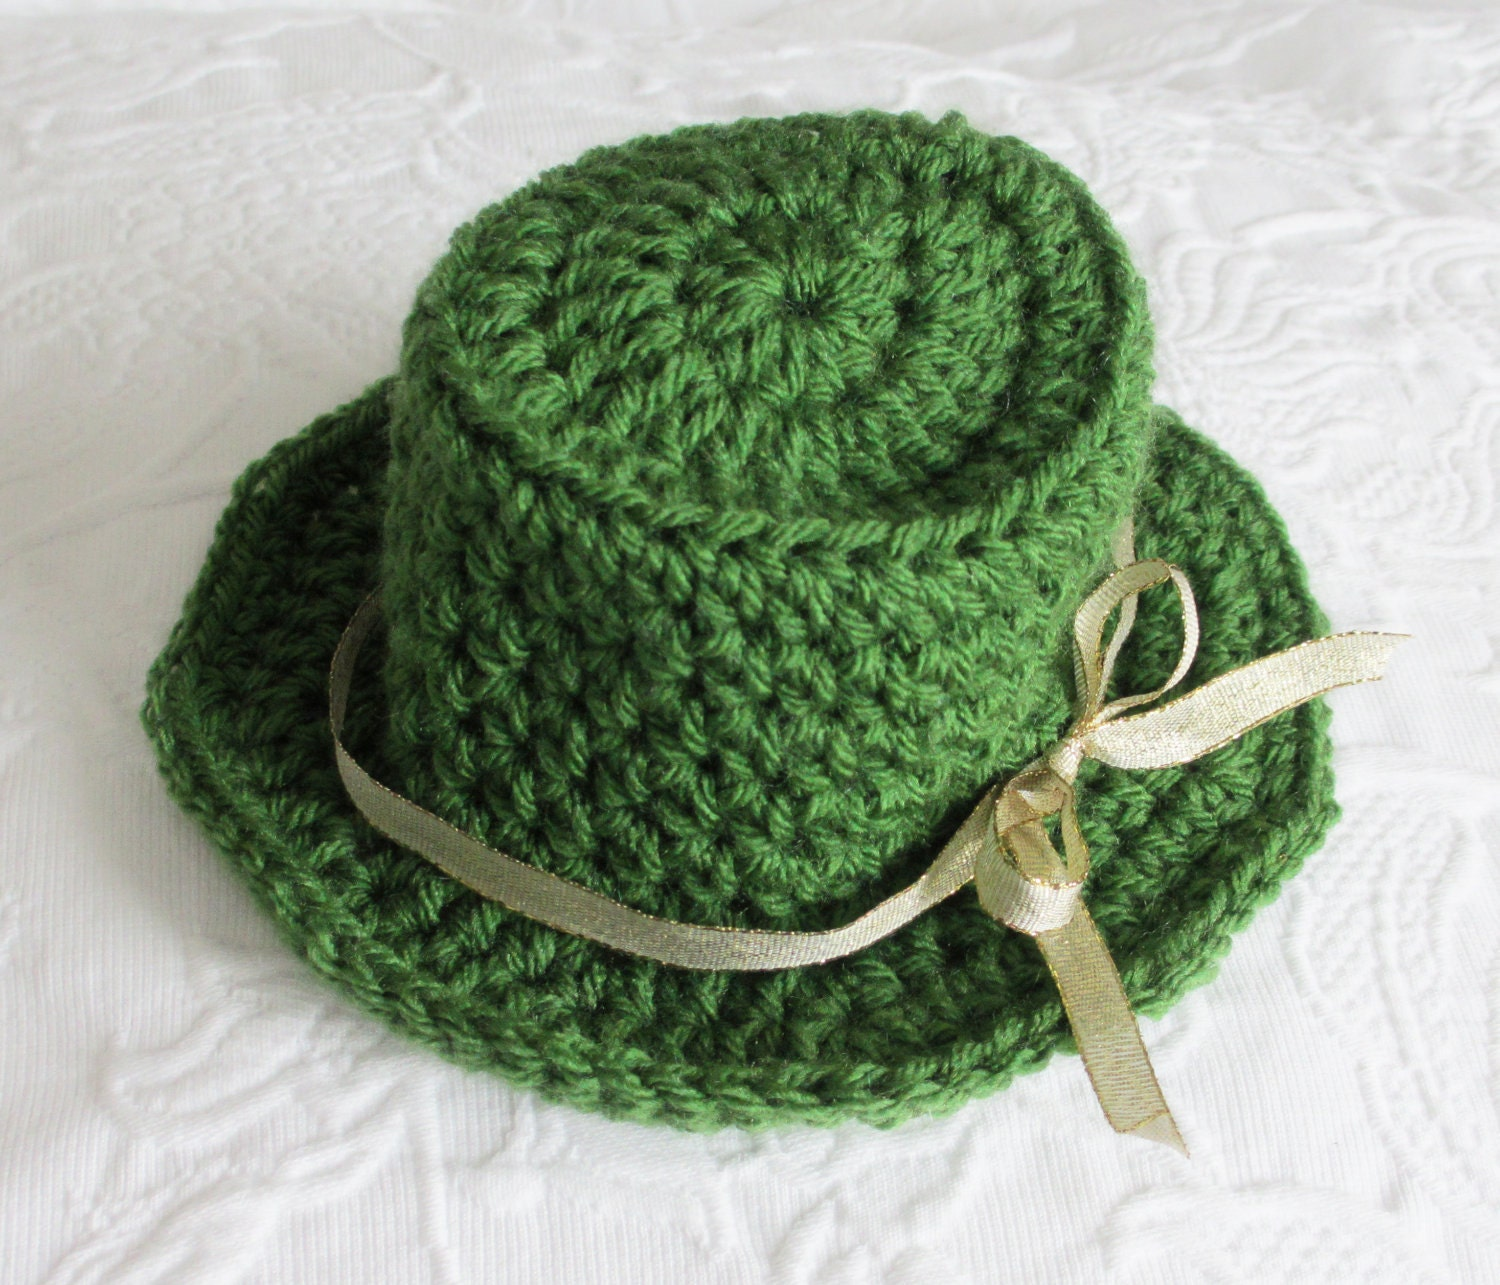 CURLY TOP CROCHETED HAT PATTERN - Crochet and Knitting Patterns